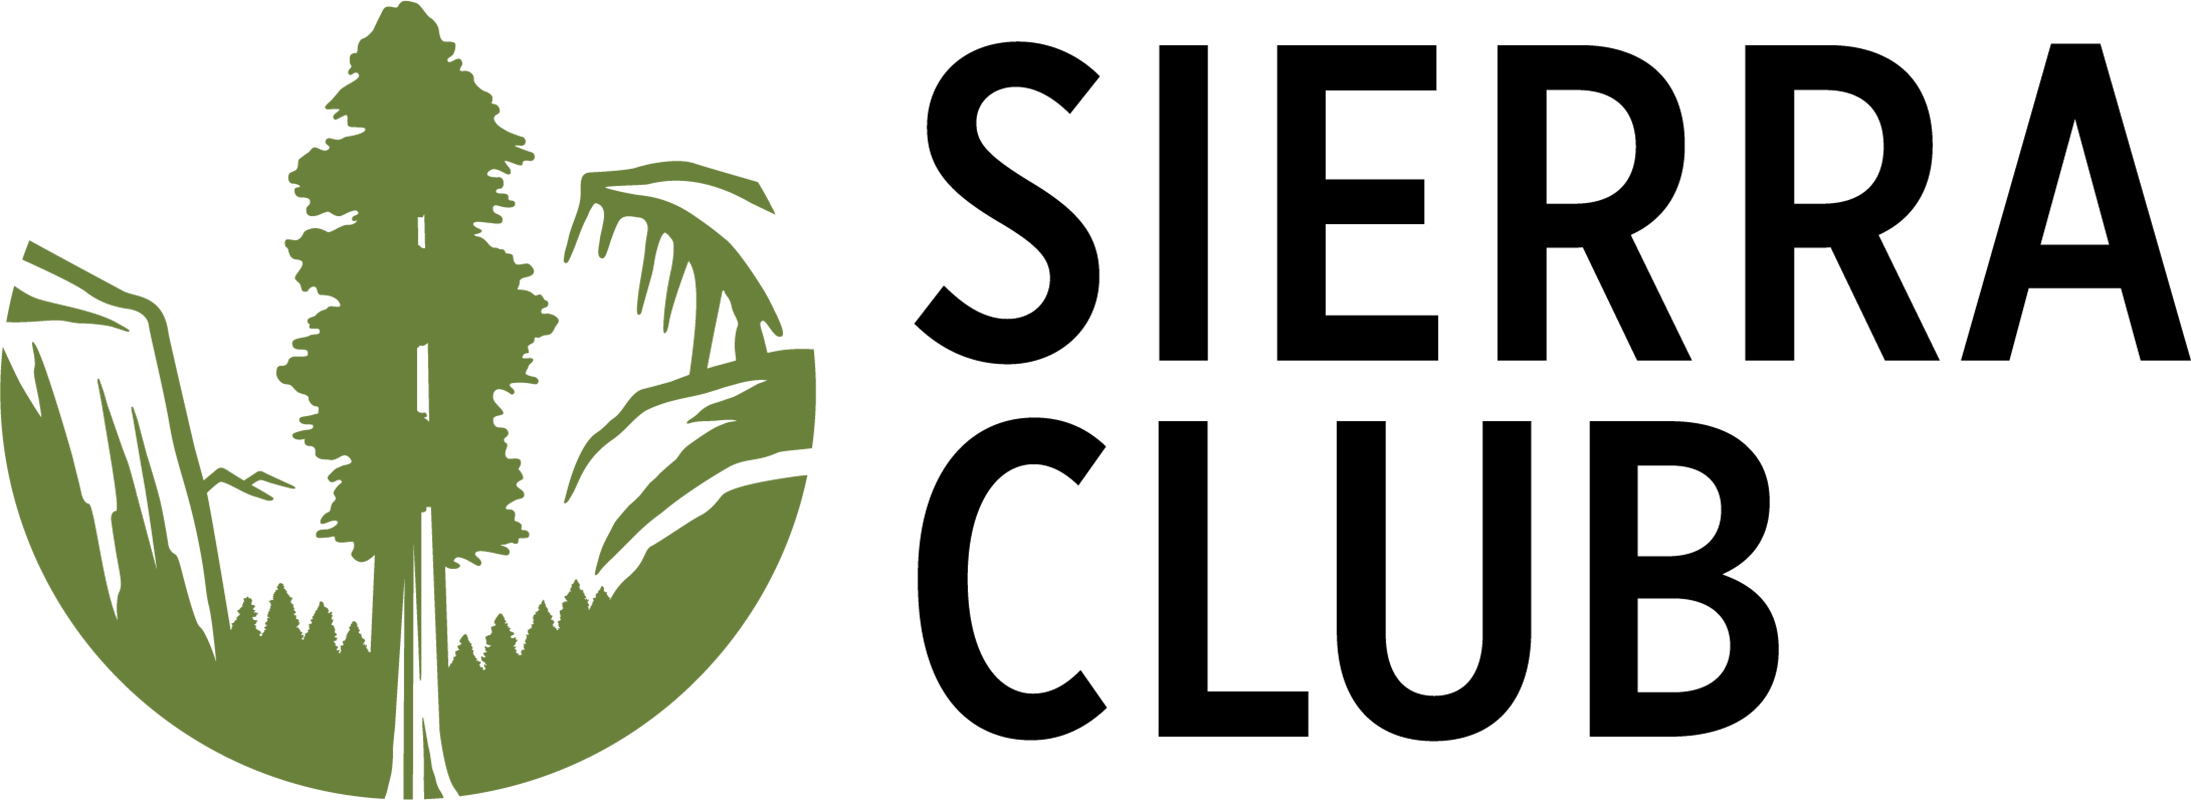 logo of Sierra Club, select to visit their website